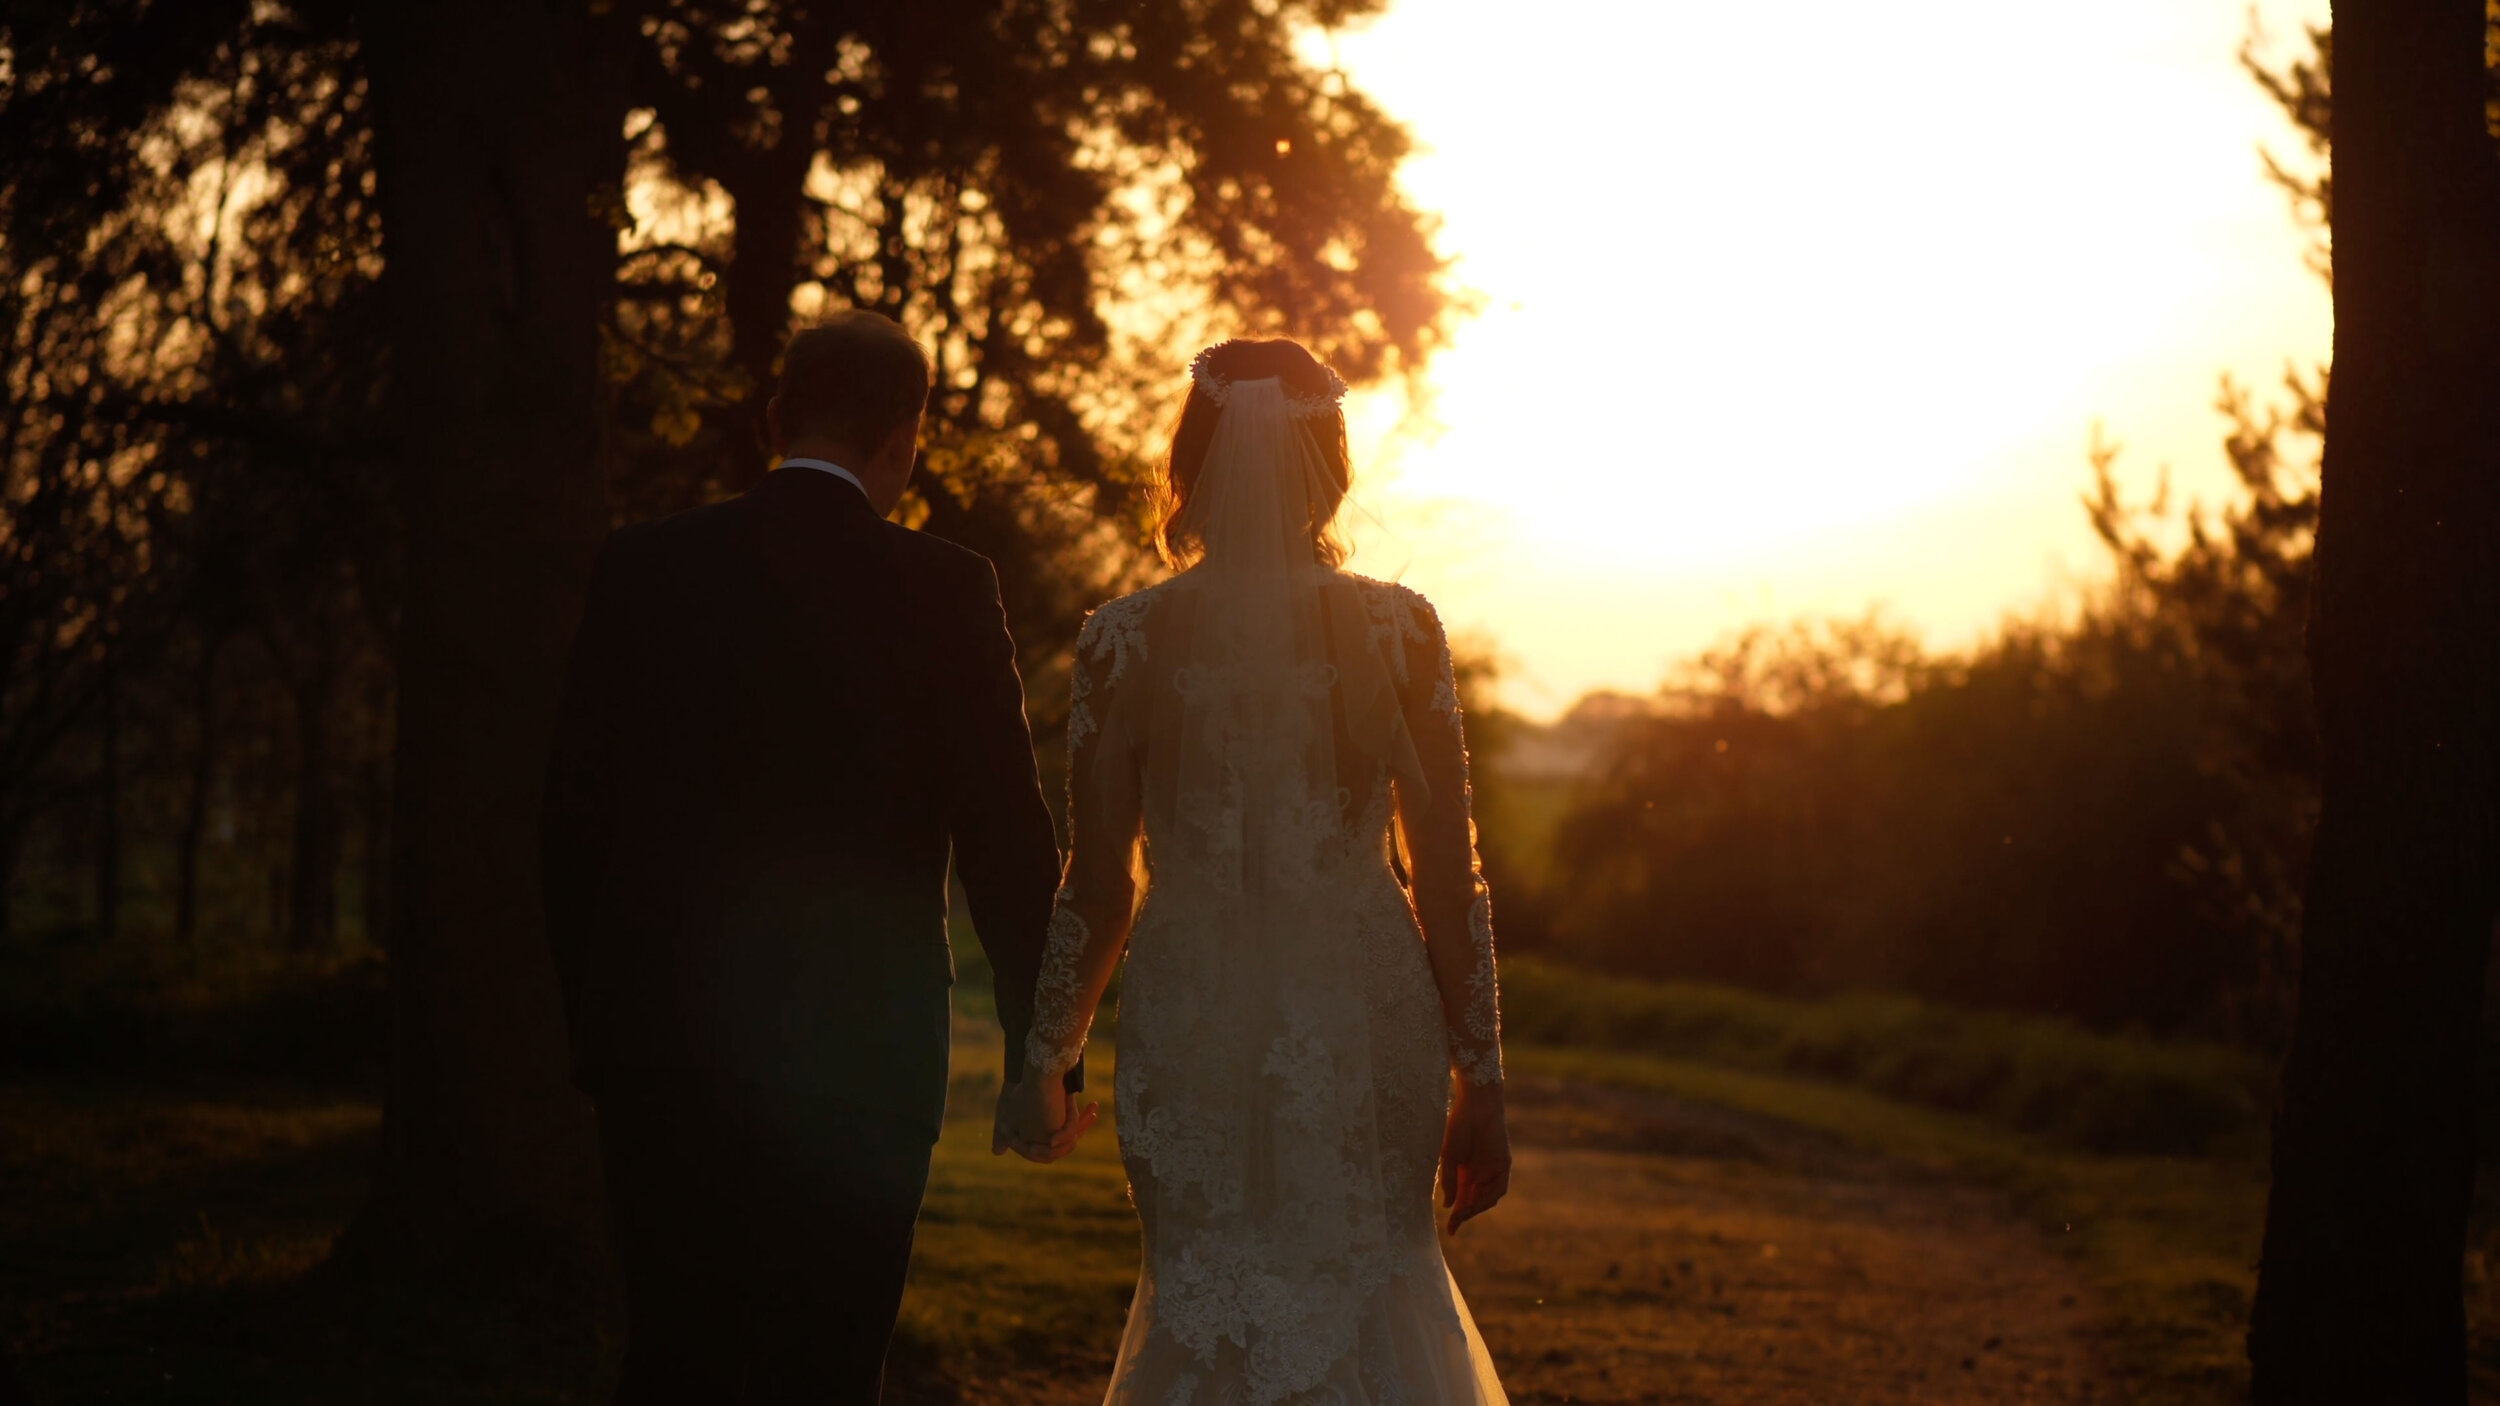 Rob and Lauren share a walk at sunset amidst a golden horizon. Walking hand in hand towards a field.